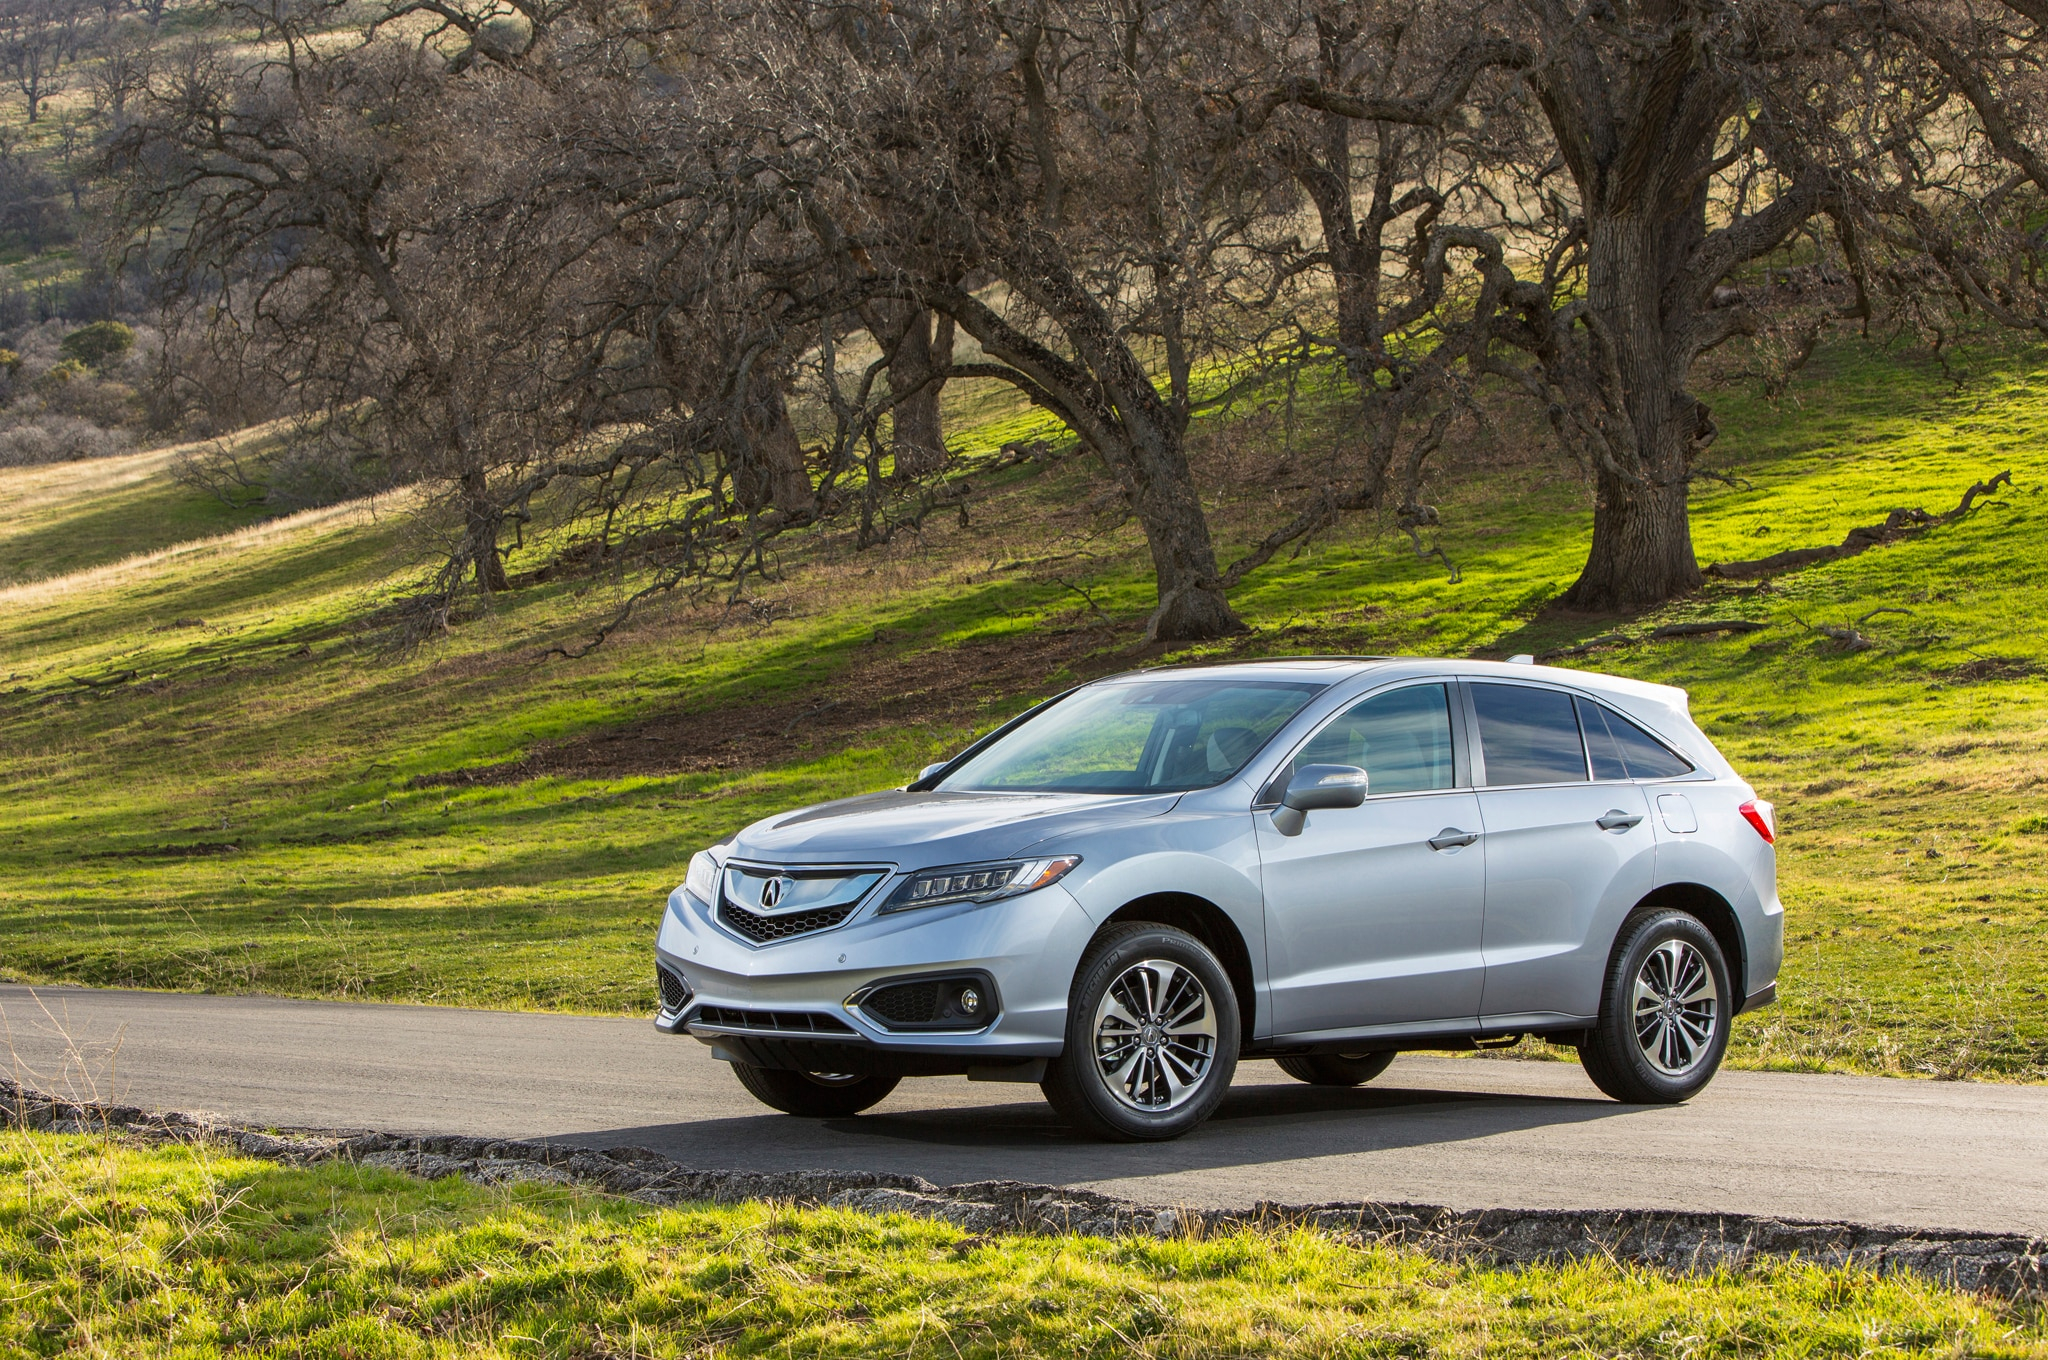 Acura Rdx 2015 >> Refreshed 2016 Acura RDX Price Rises, New Advance Package Available